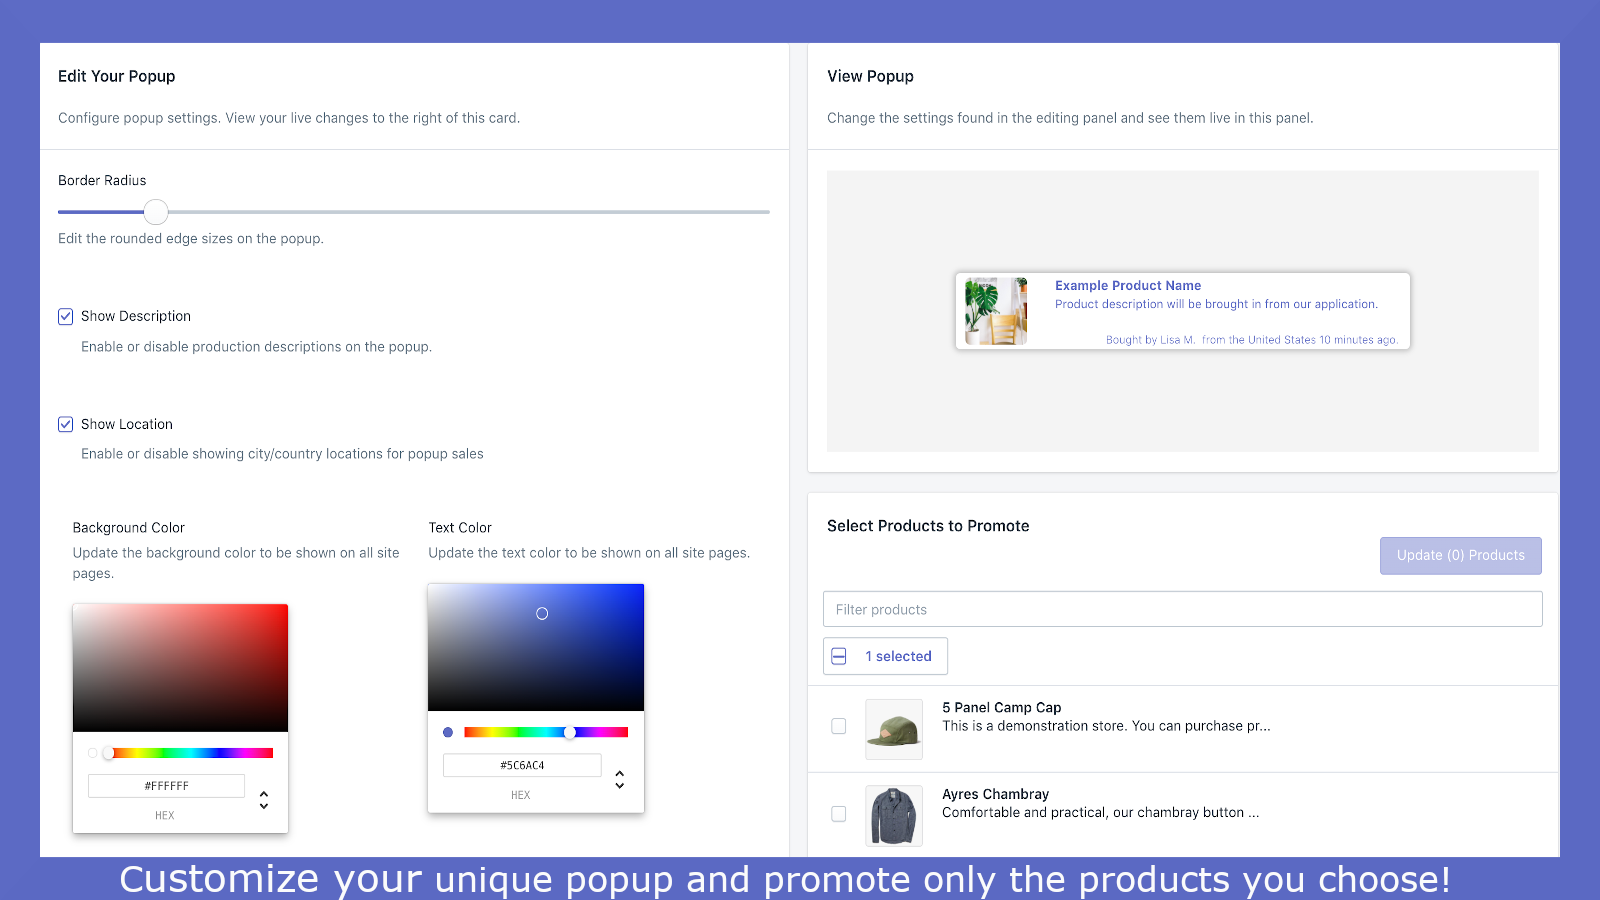 Customize popup and select products to promote!